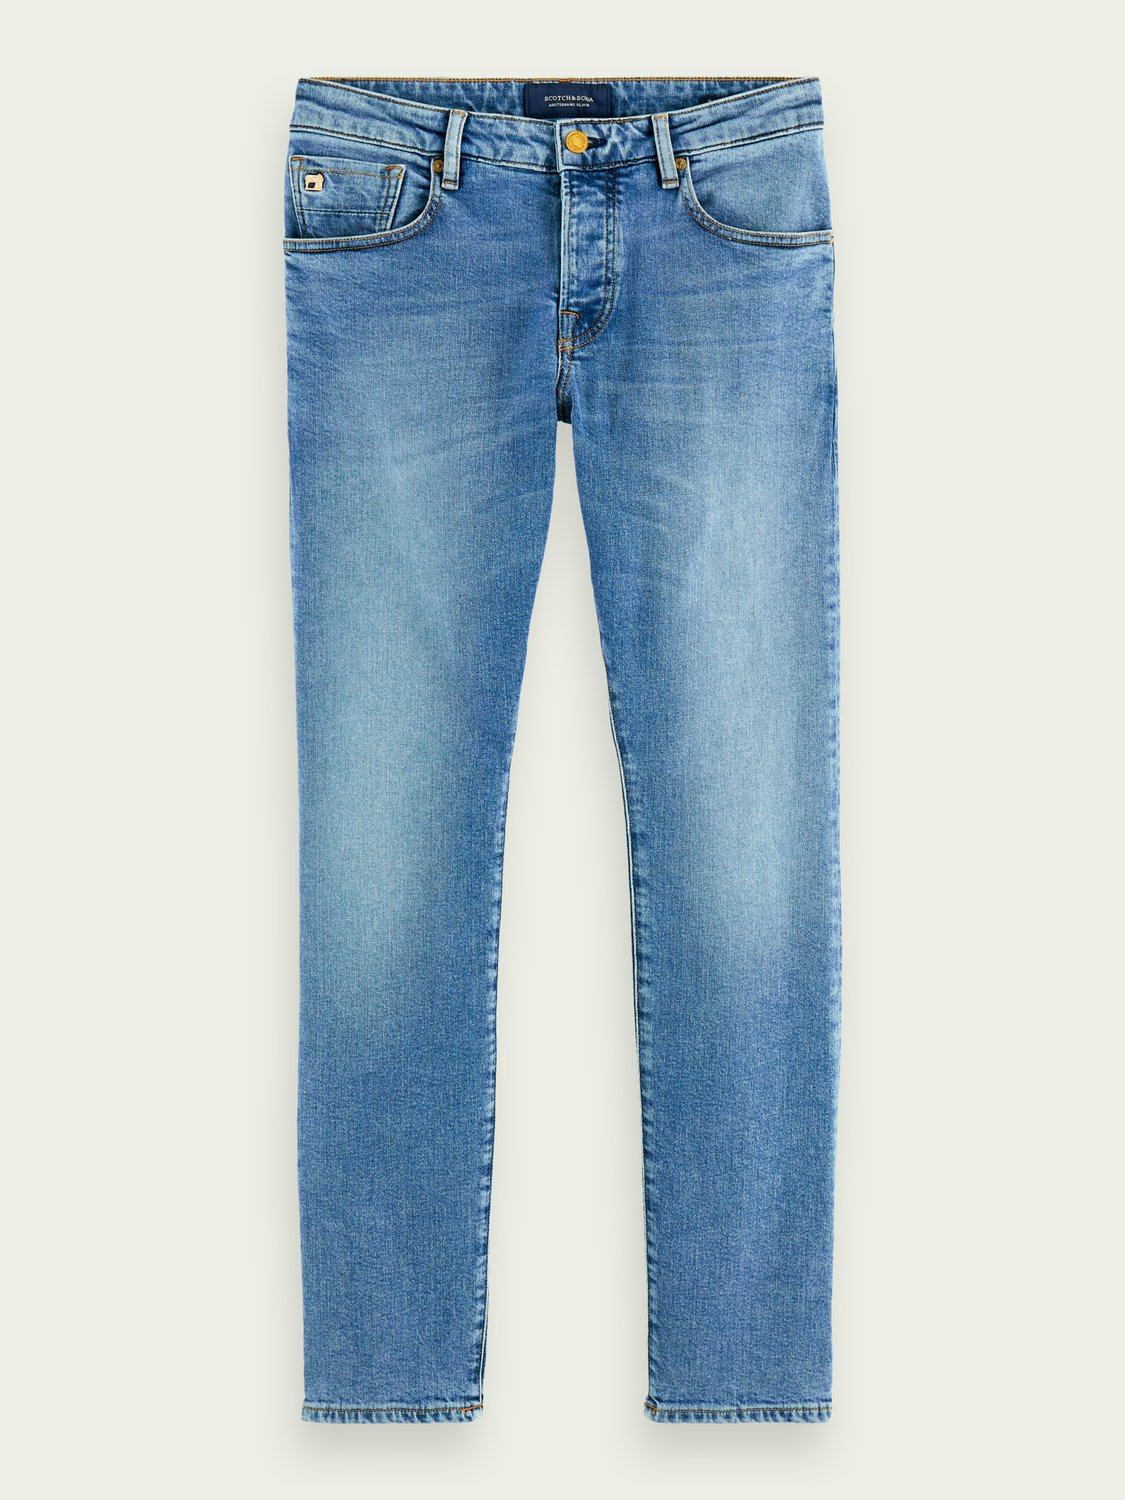 Men Ralston - Midday Blauw | Regular slim fit jeans